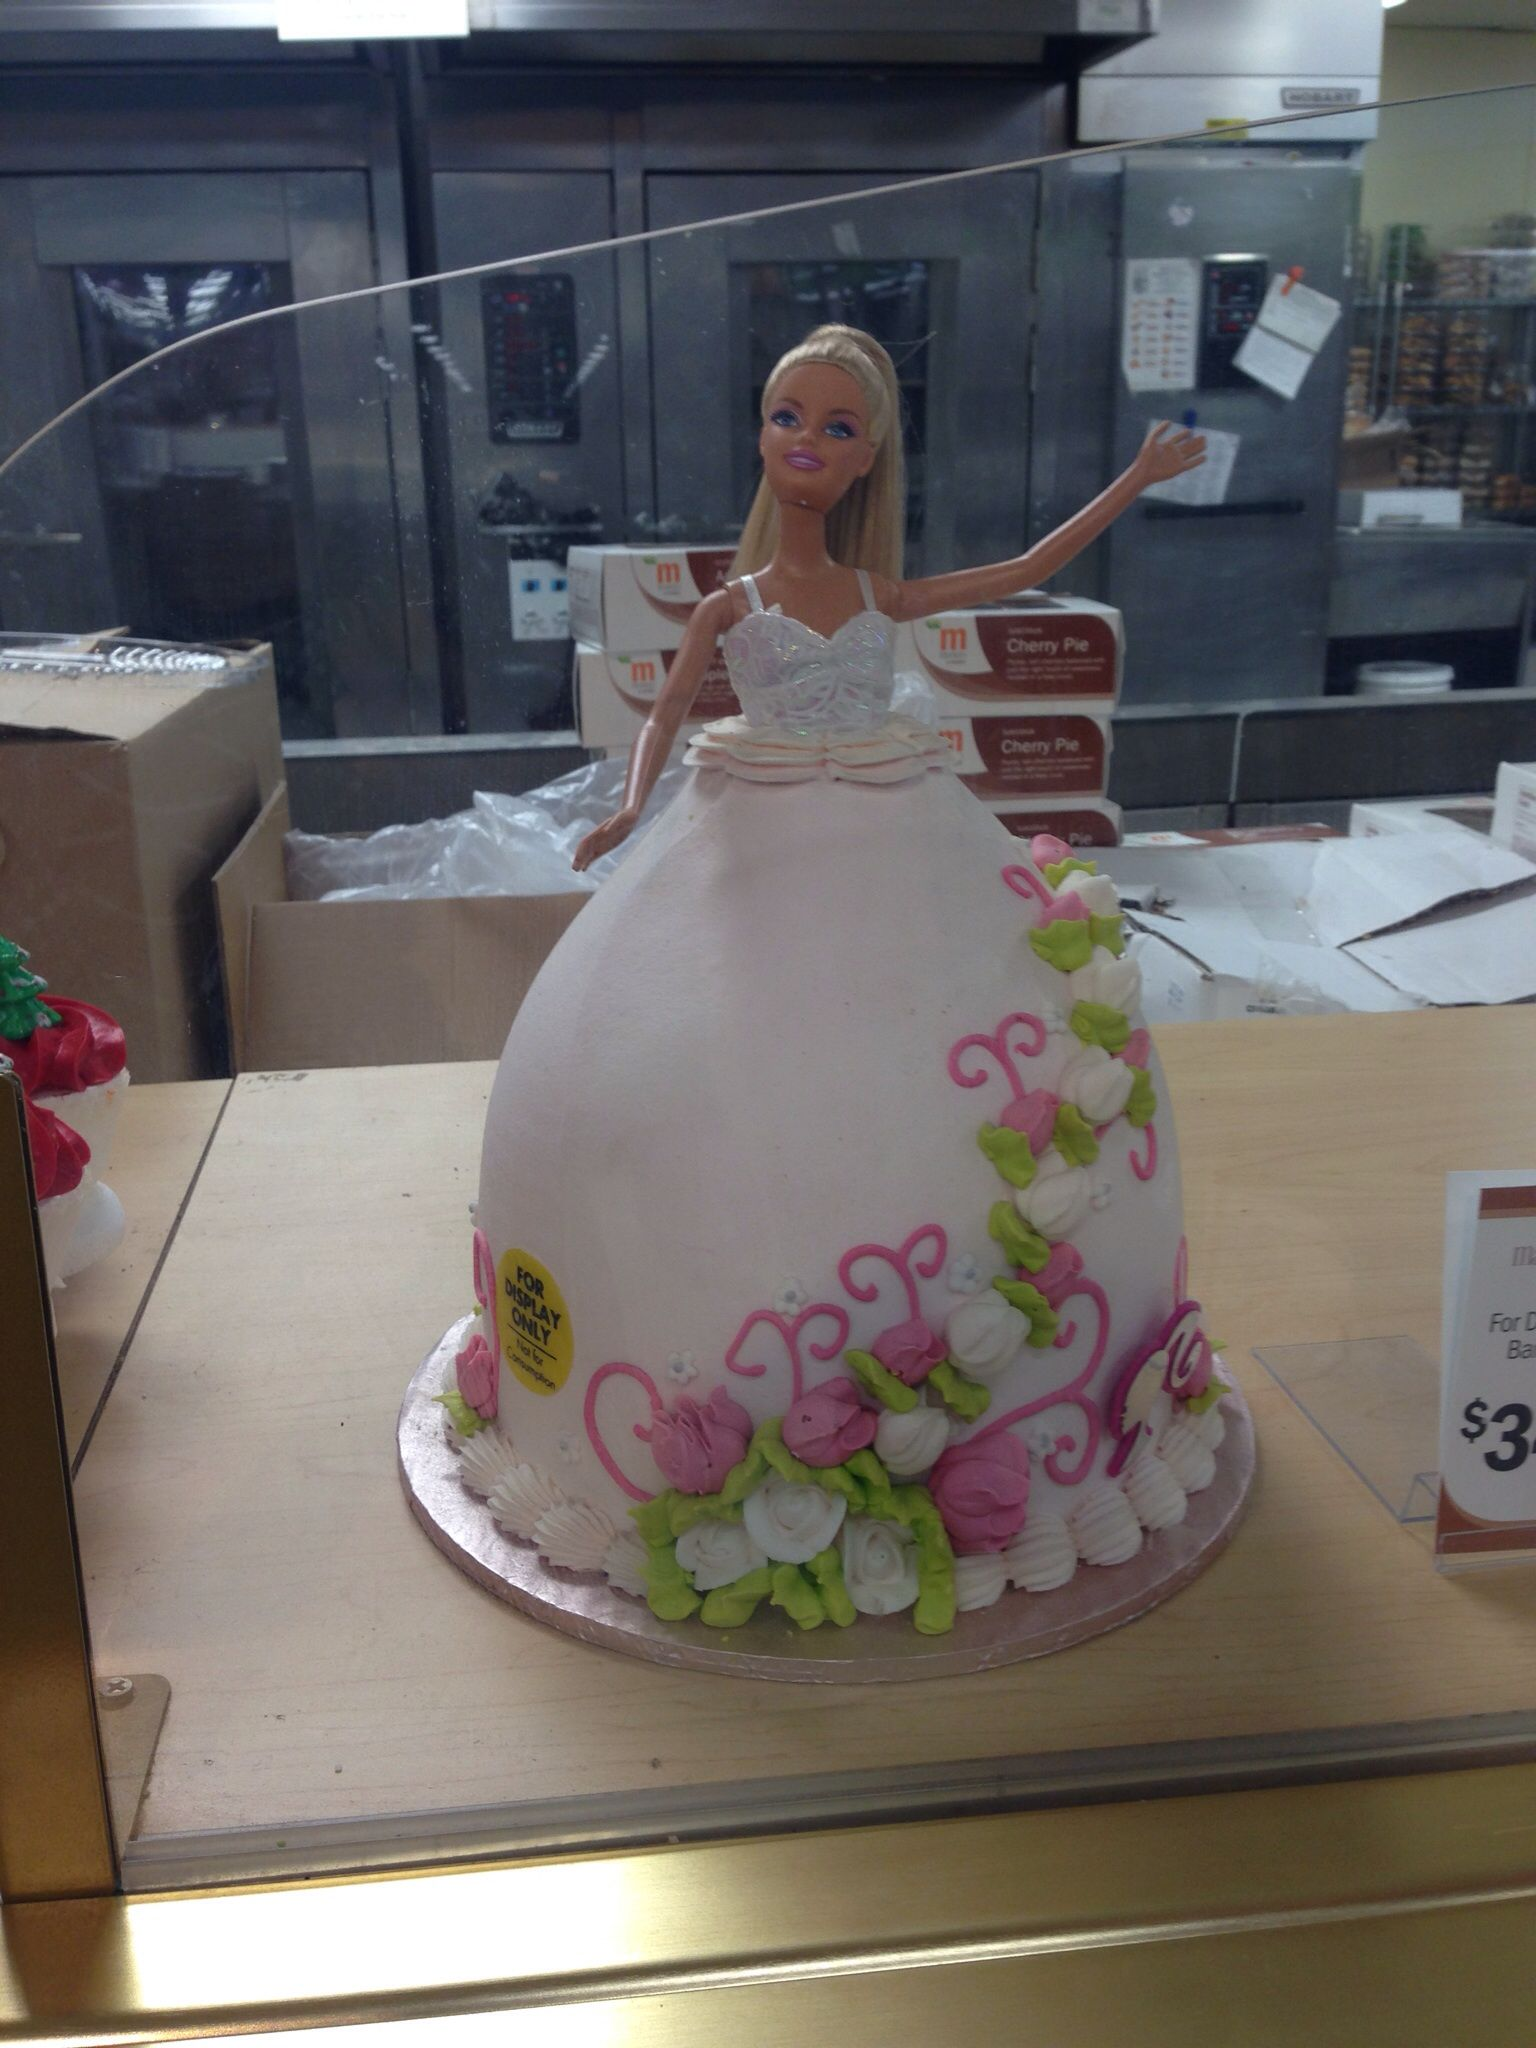 Surprising Saw This Barbie Cake At Meijer And Had To Share Birthday Cake Funny Birthday Cards Online Inifodamsfinfo